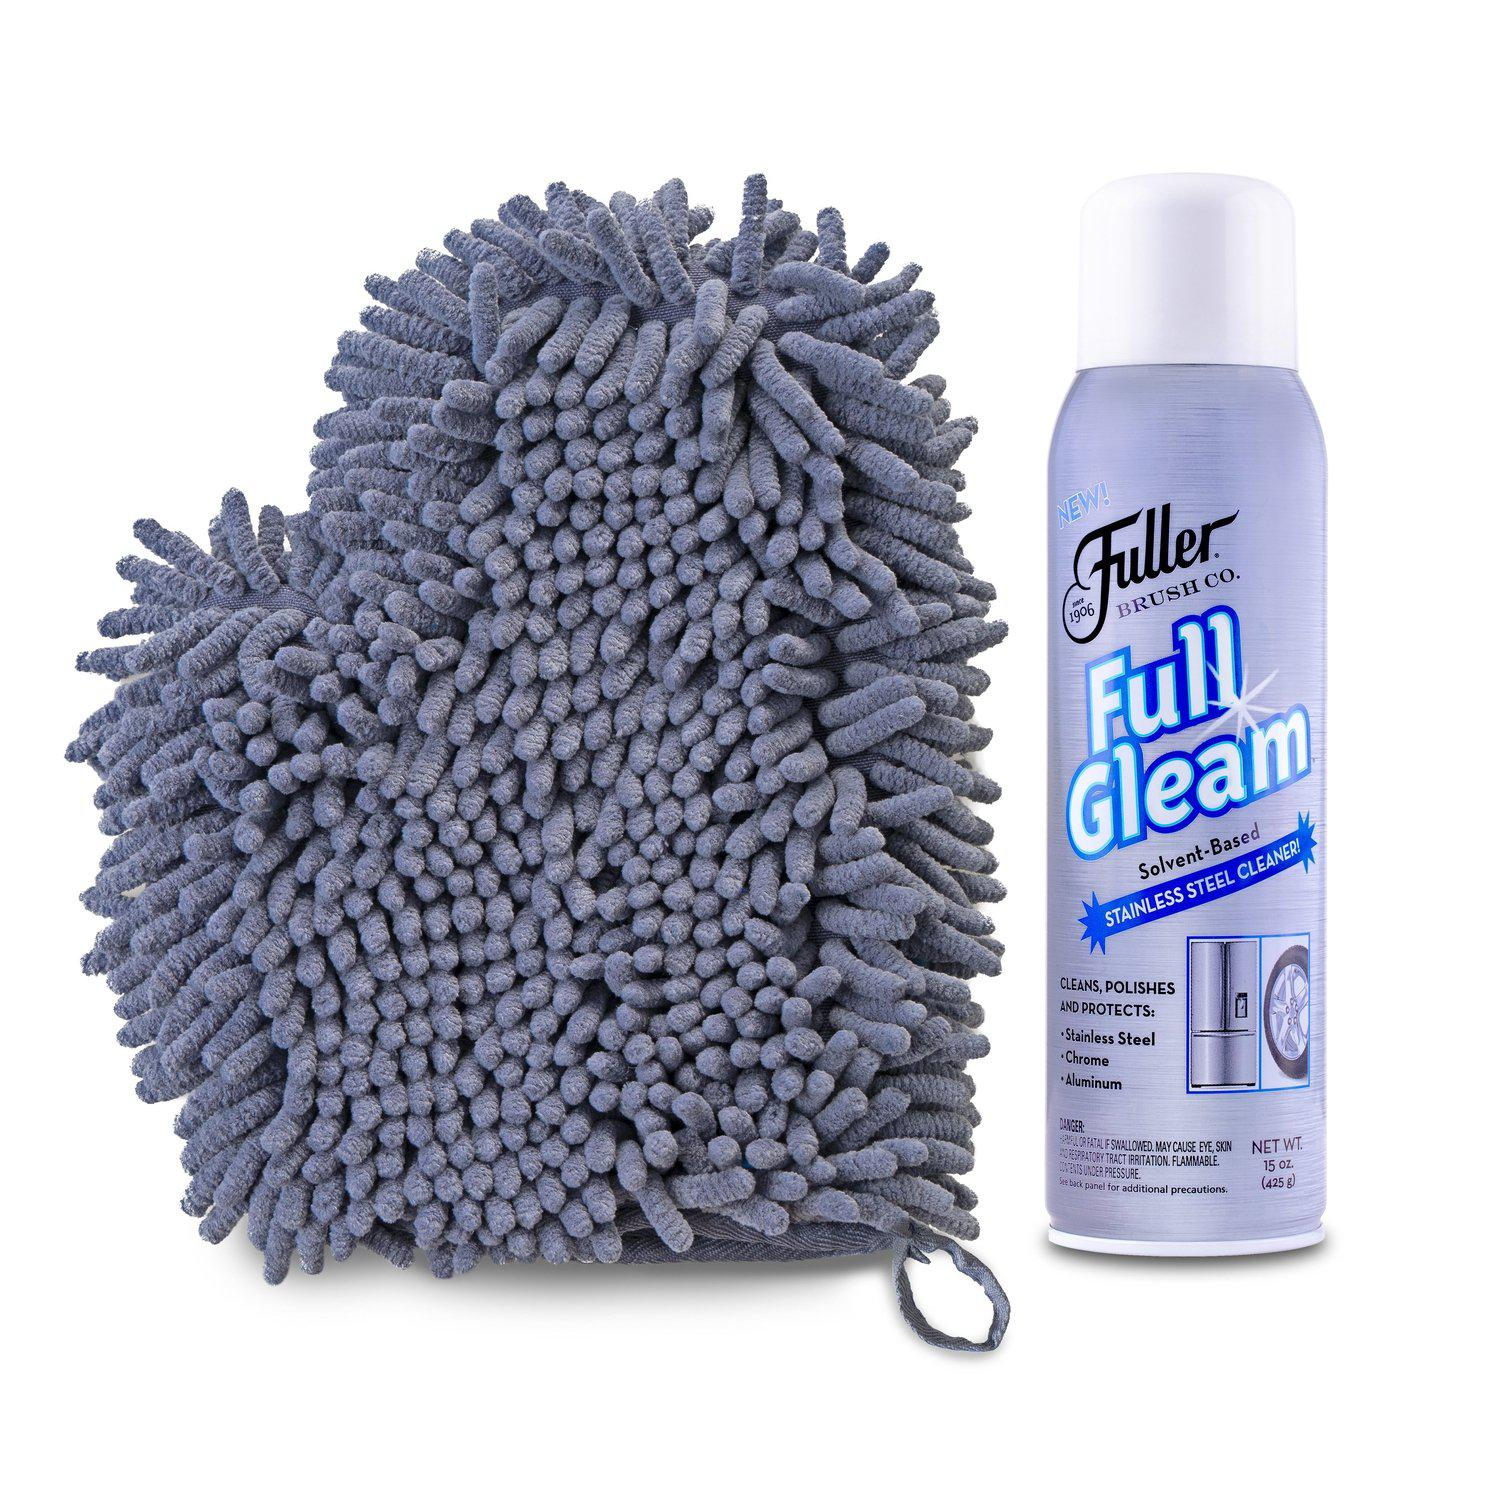 Stainless Steel Easy Clean & Polish Kit-Polishes-Fuller Brush Company